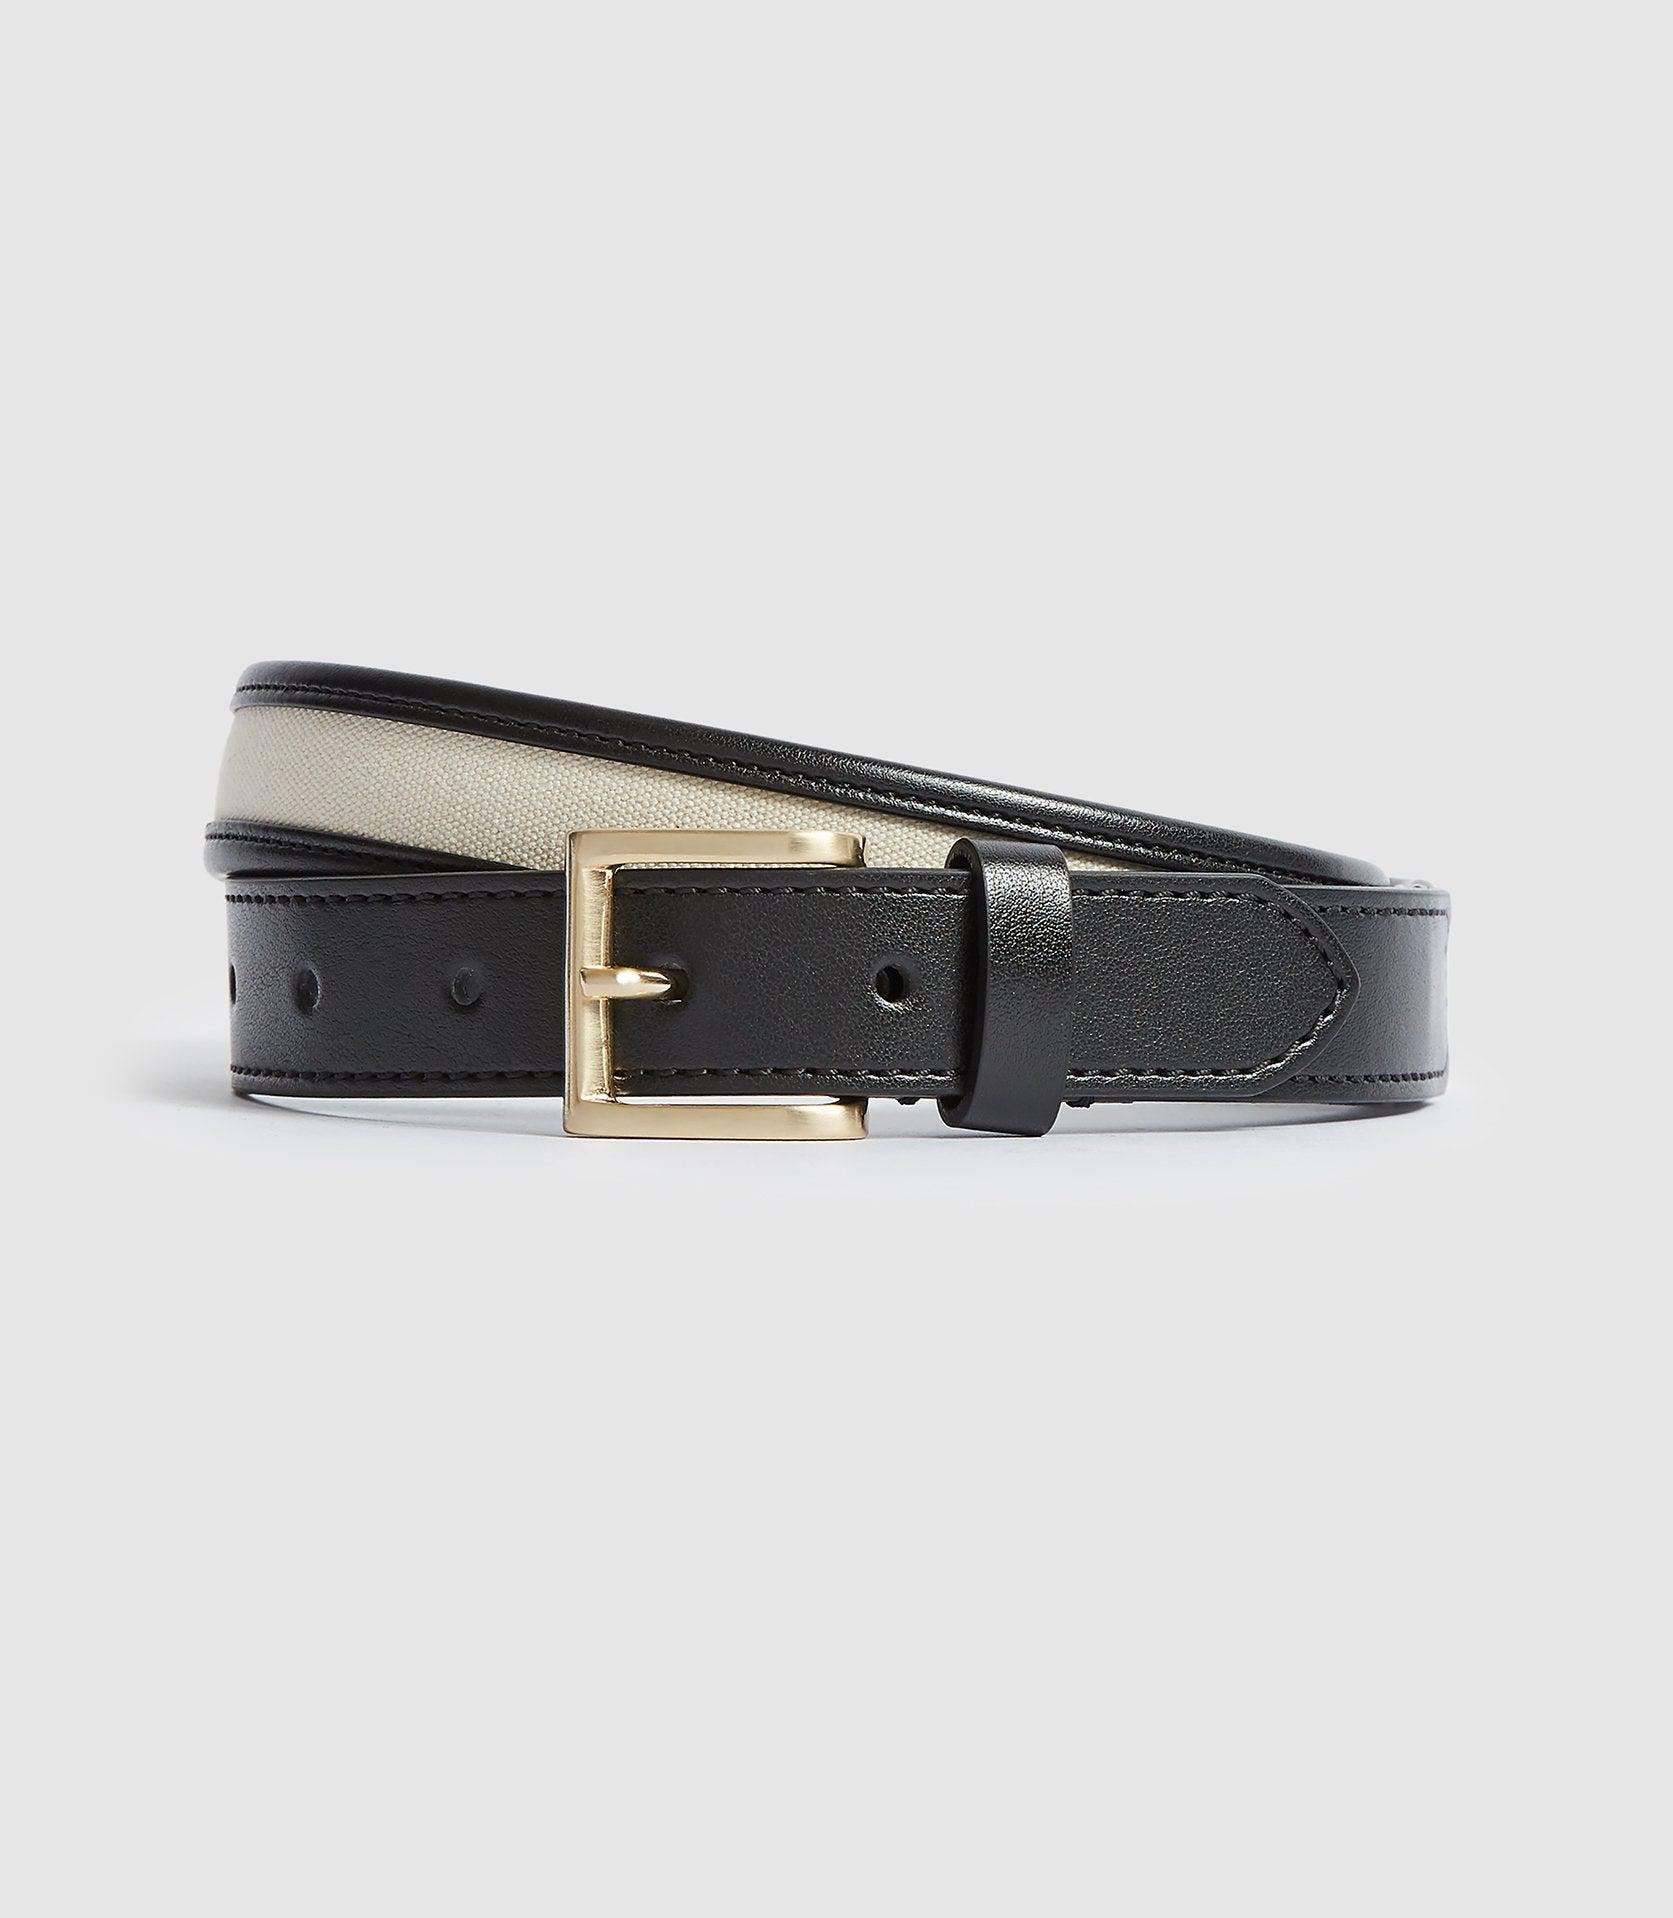 MOLLY - LEATHER BELT WITH CANVAS DETAILING